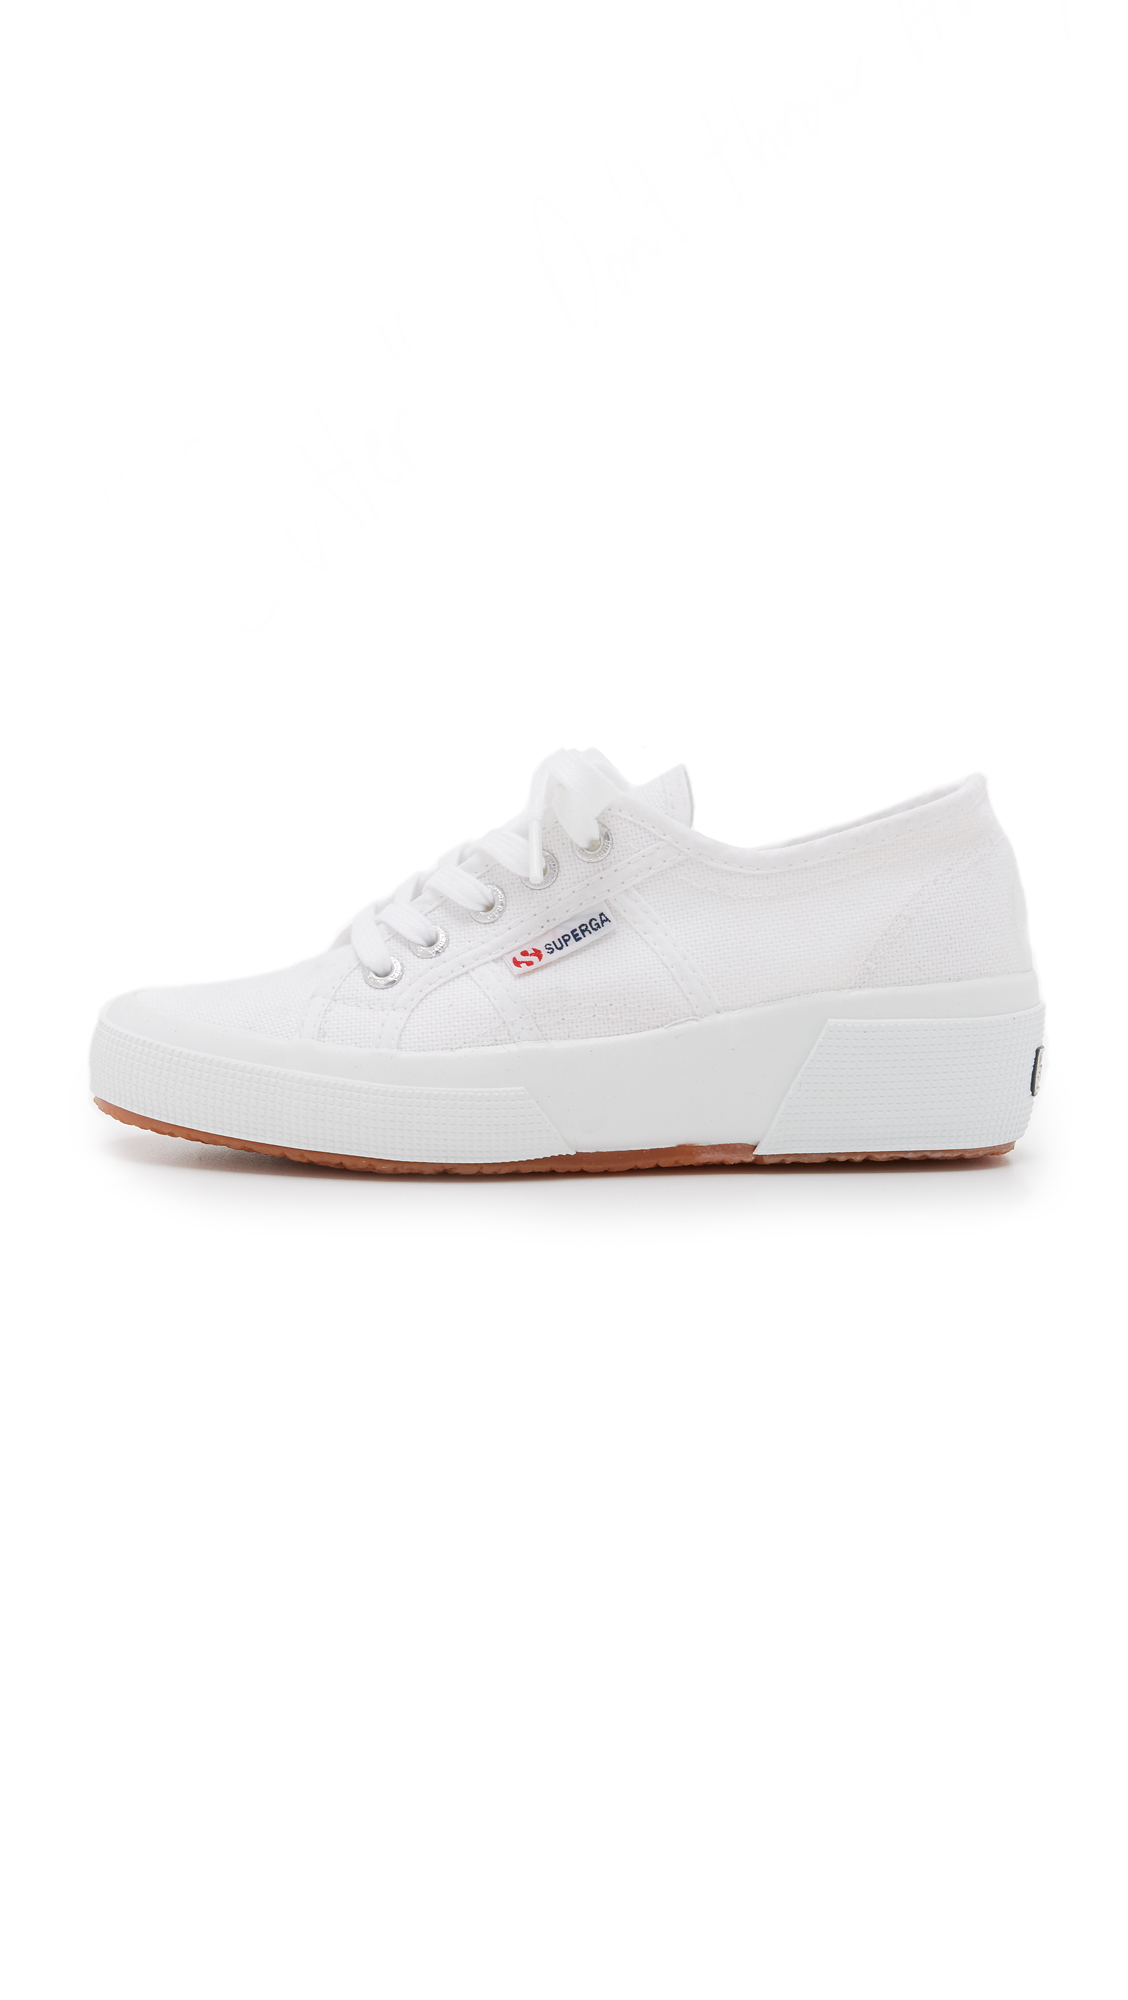 b101dcc367f8 Lyst - Superga Cotu Wedge Sneakers in White